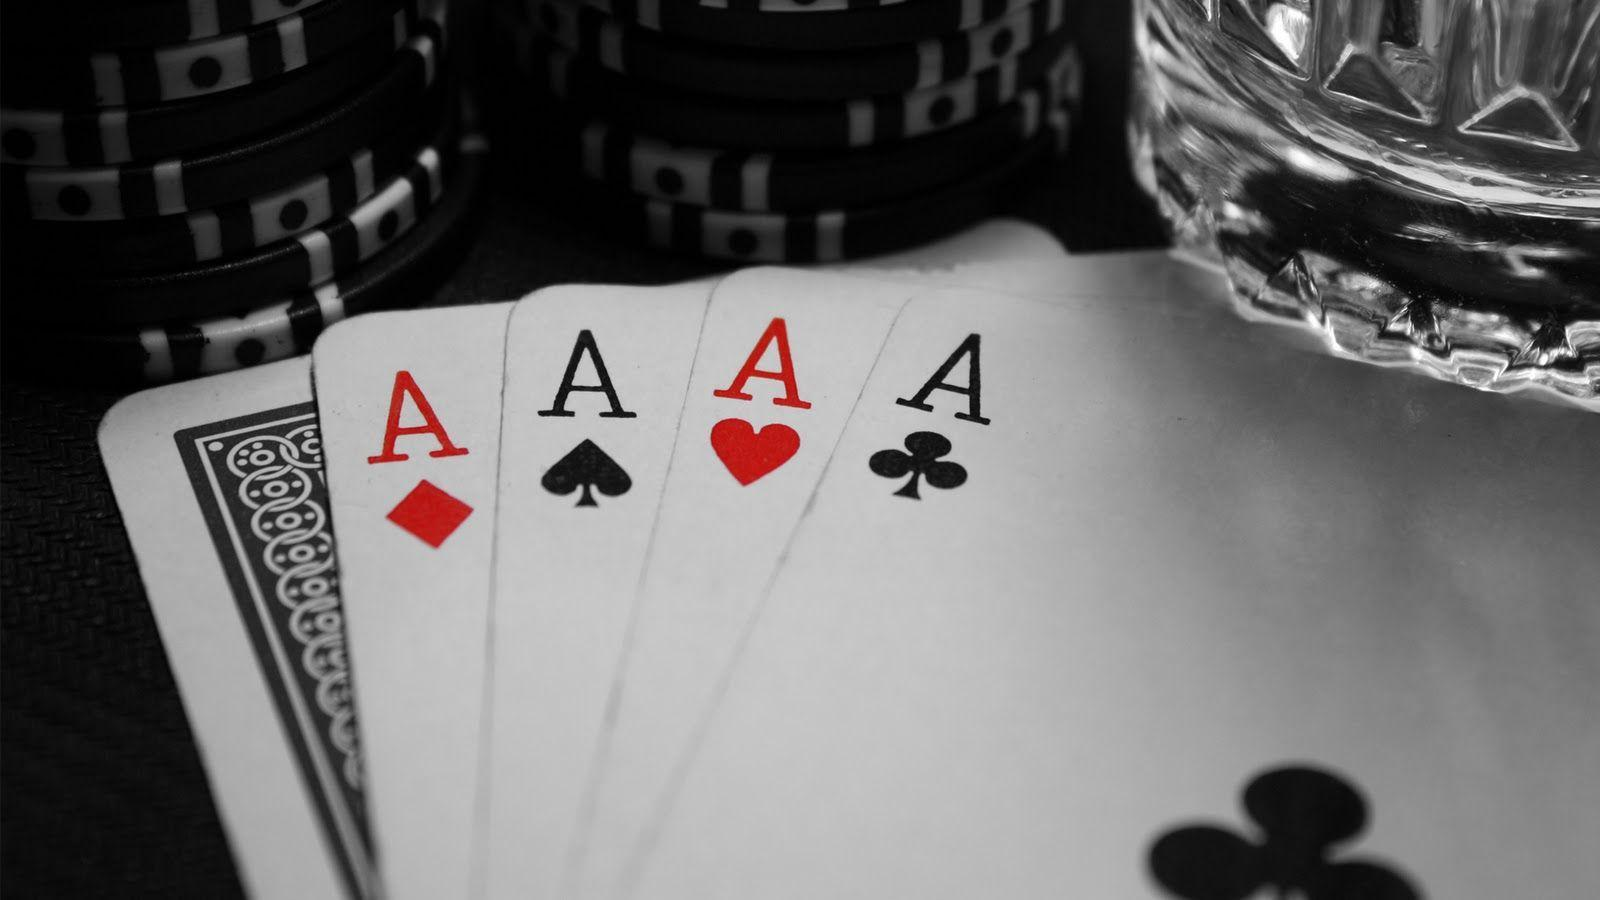 Tips On Online Gambling From Unlikely Sources